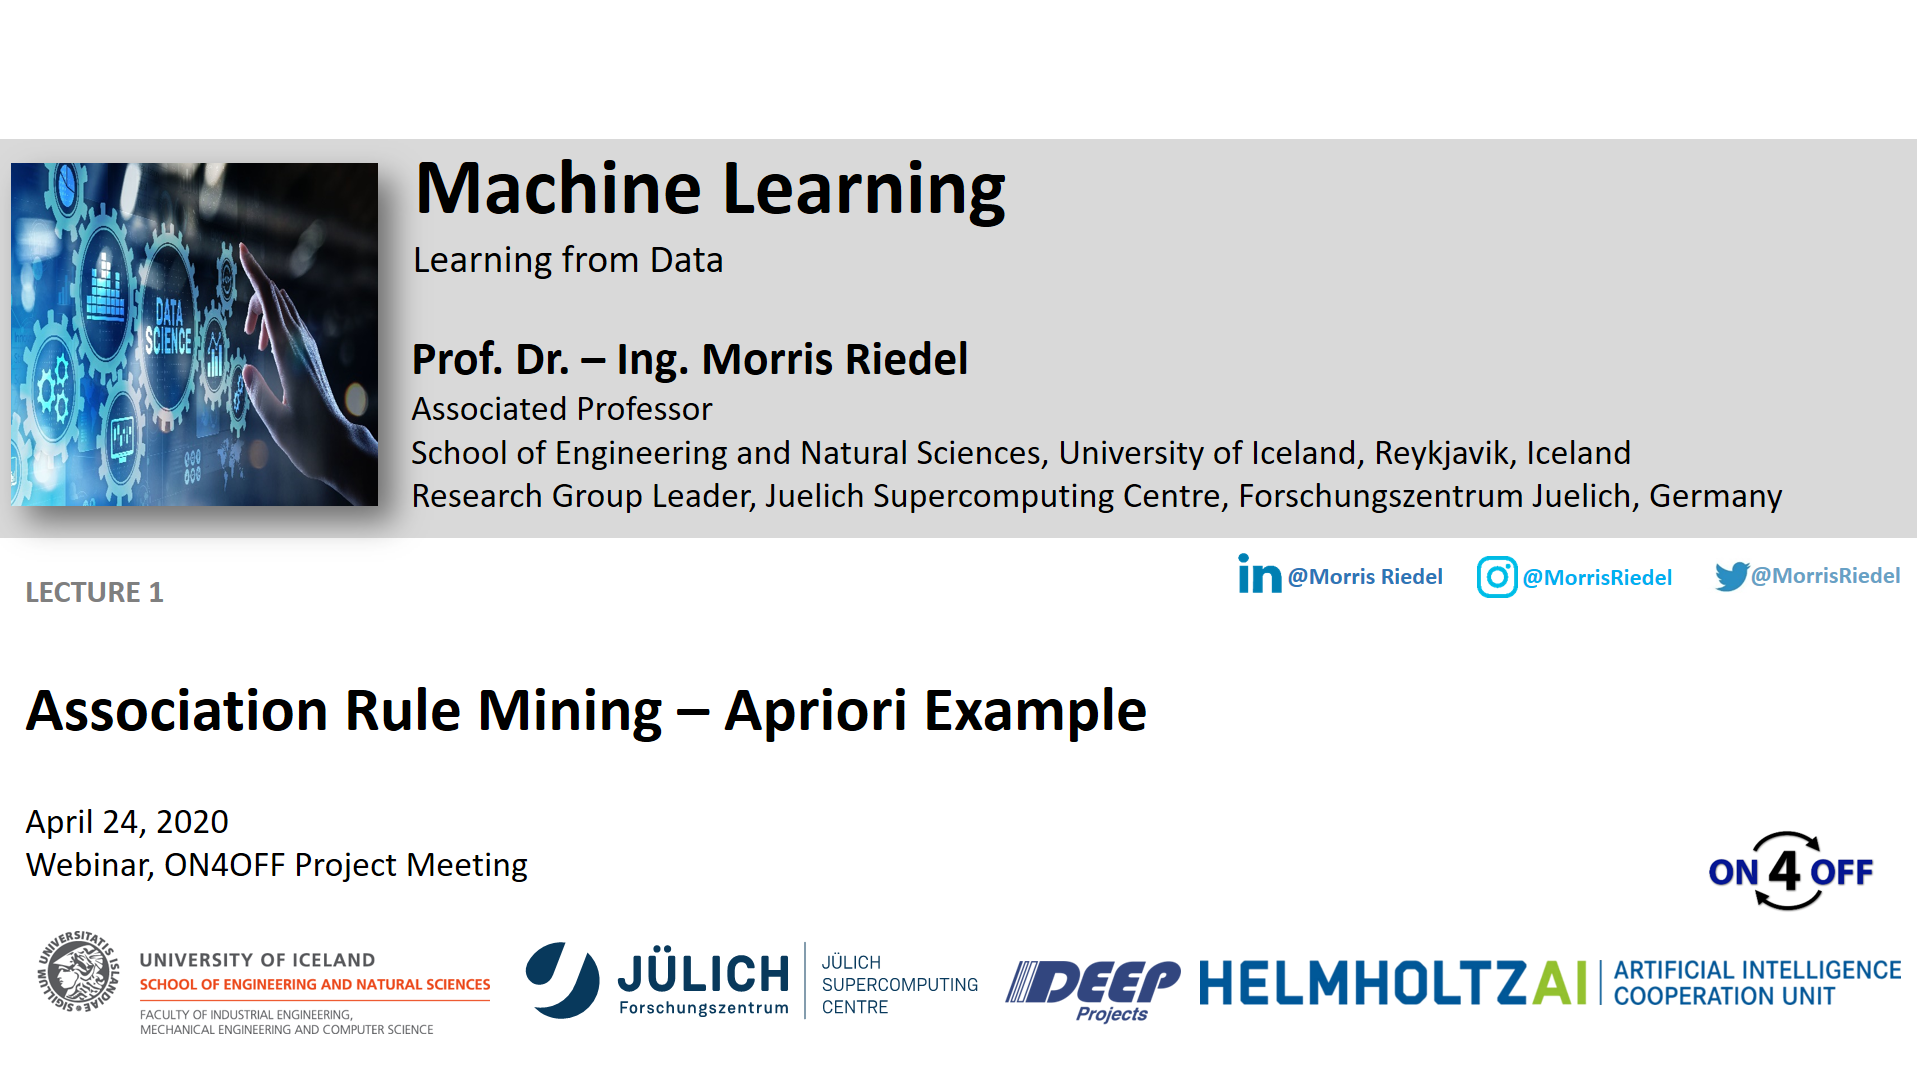 ON4OFF Demo Association Rule Mining - Apriori Example Morris Riedel